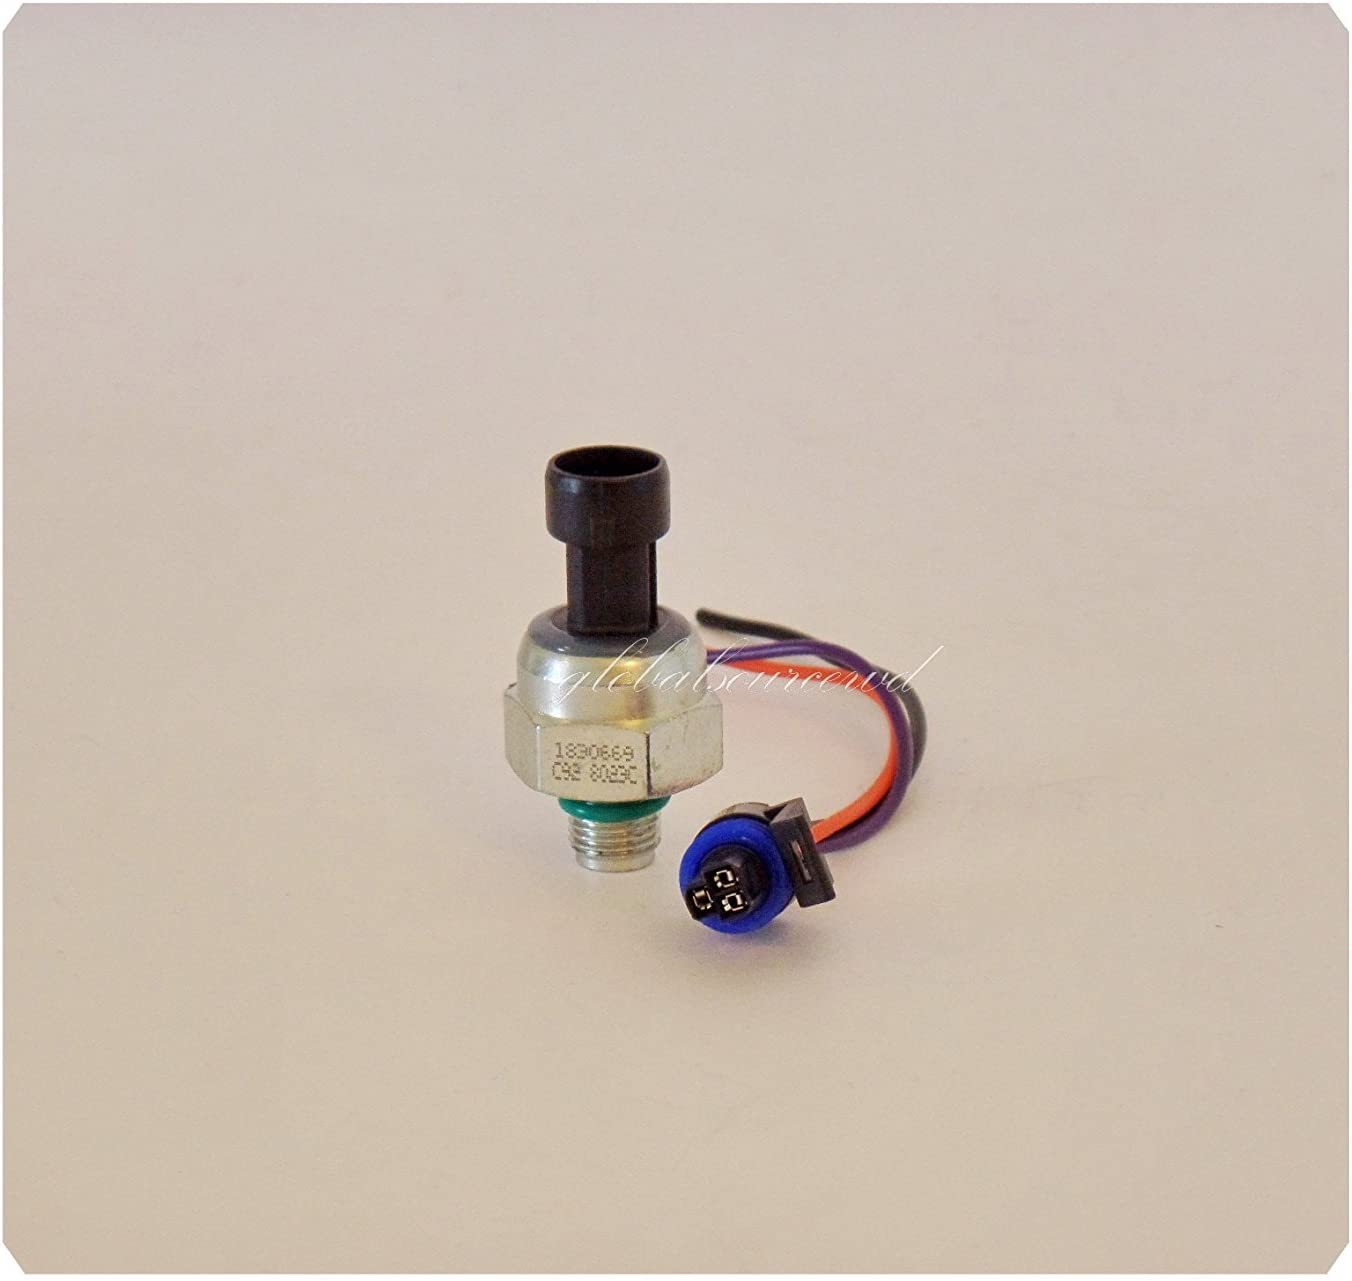 1830669C92 Injection Max 59% OFF National uniform free shipping Control Pressure ICP Adapt Sensor With Wire